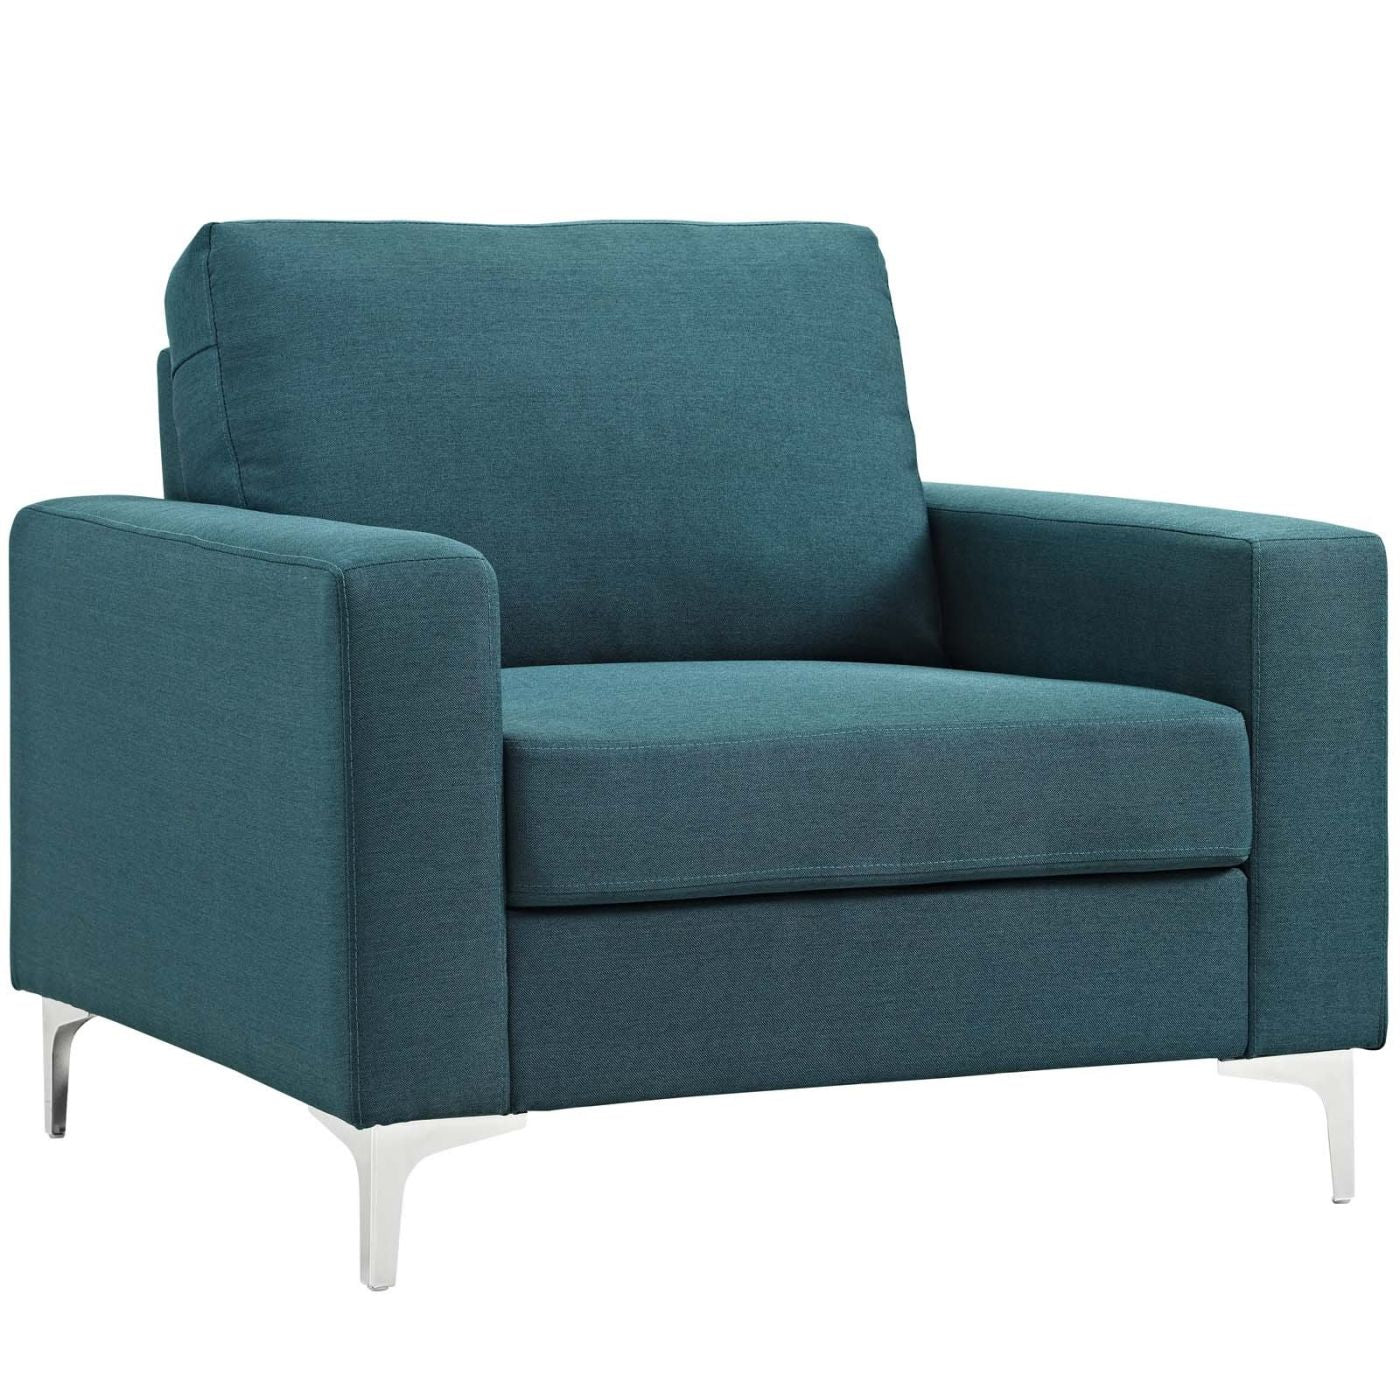 Modway Armchairs On Sale Eei 2776 Blu Allure Upholstered